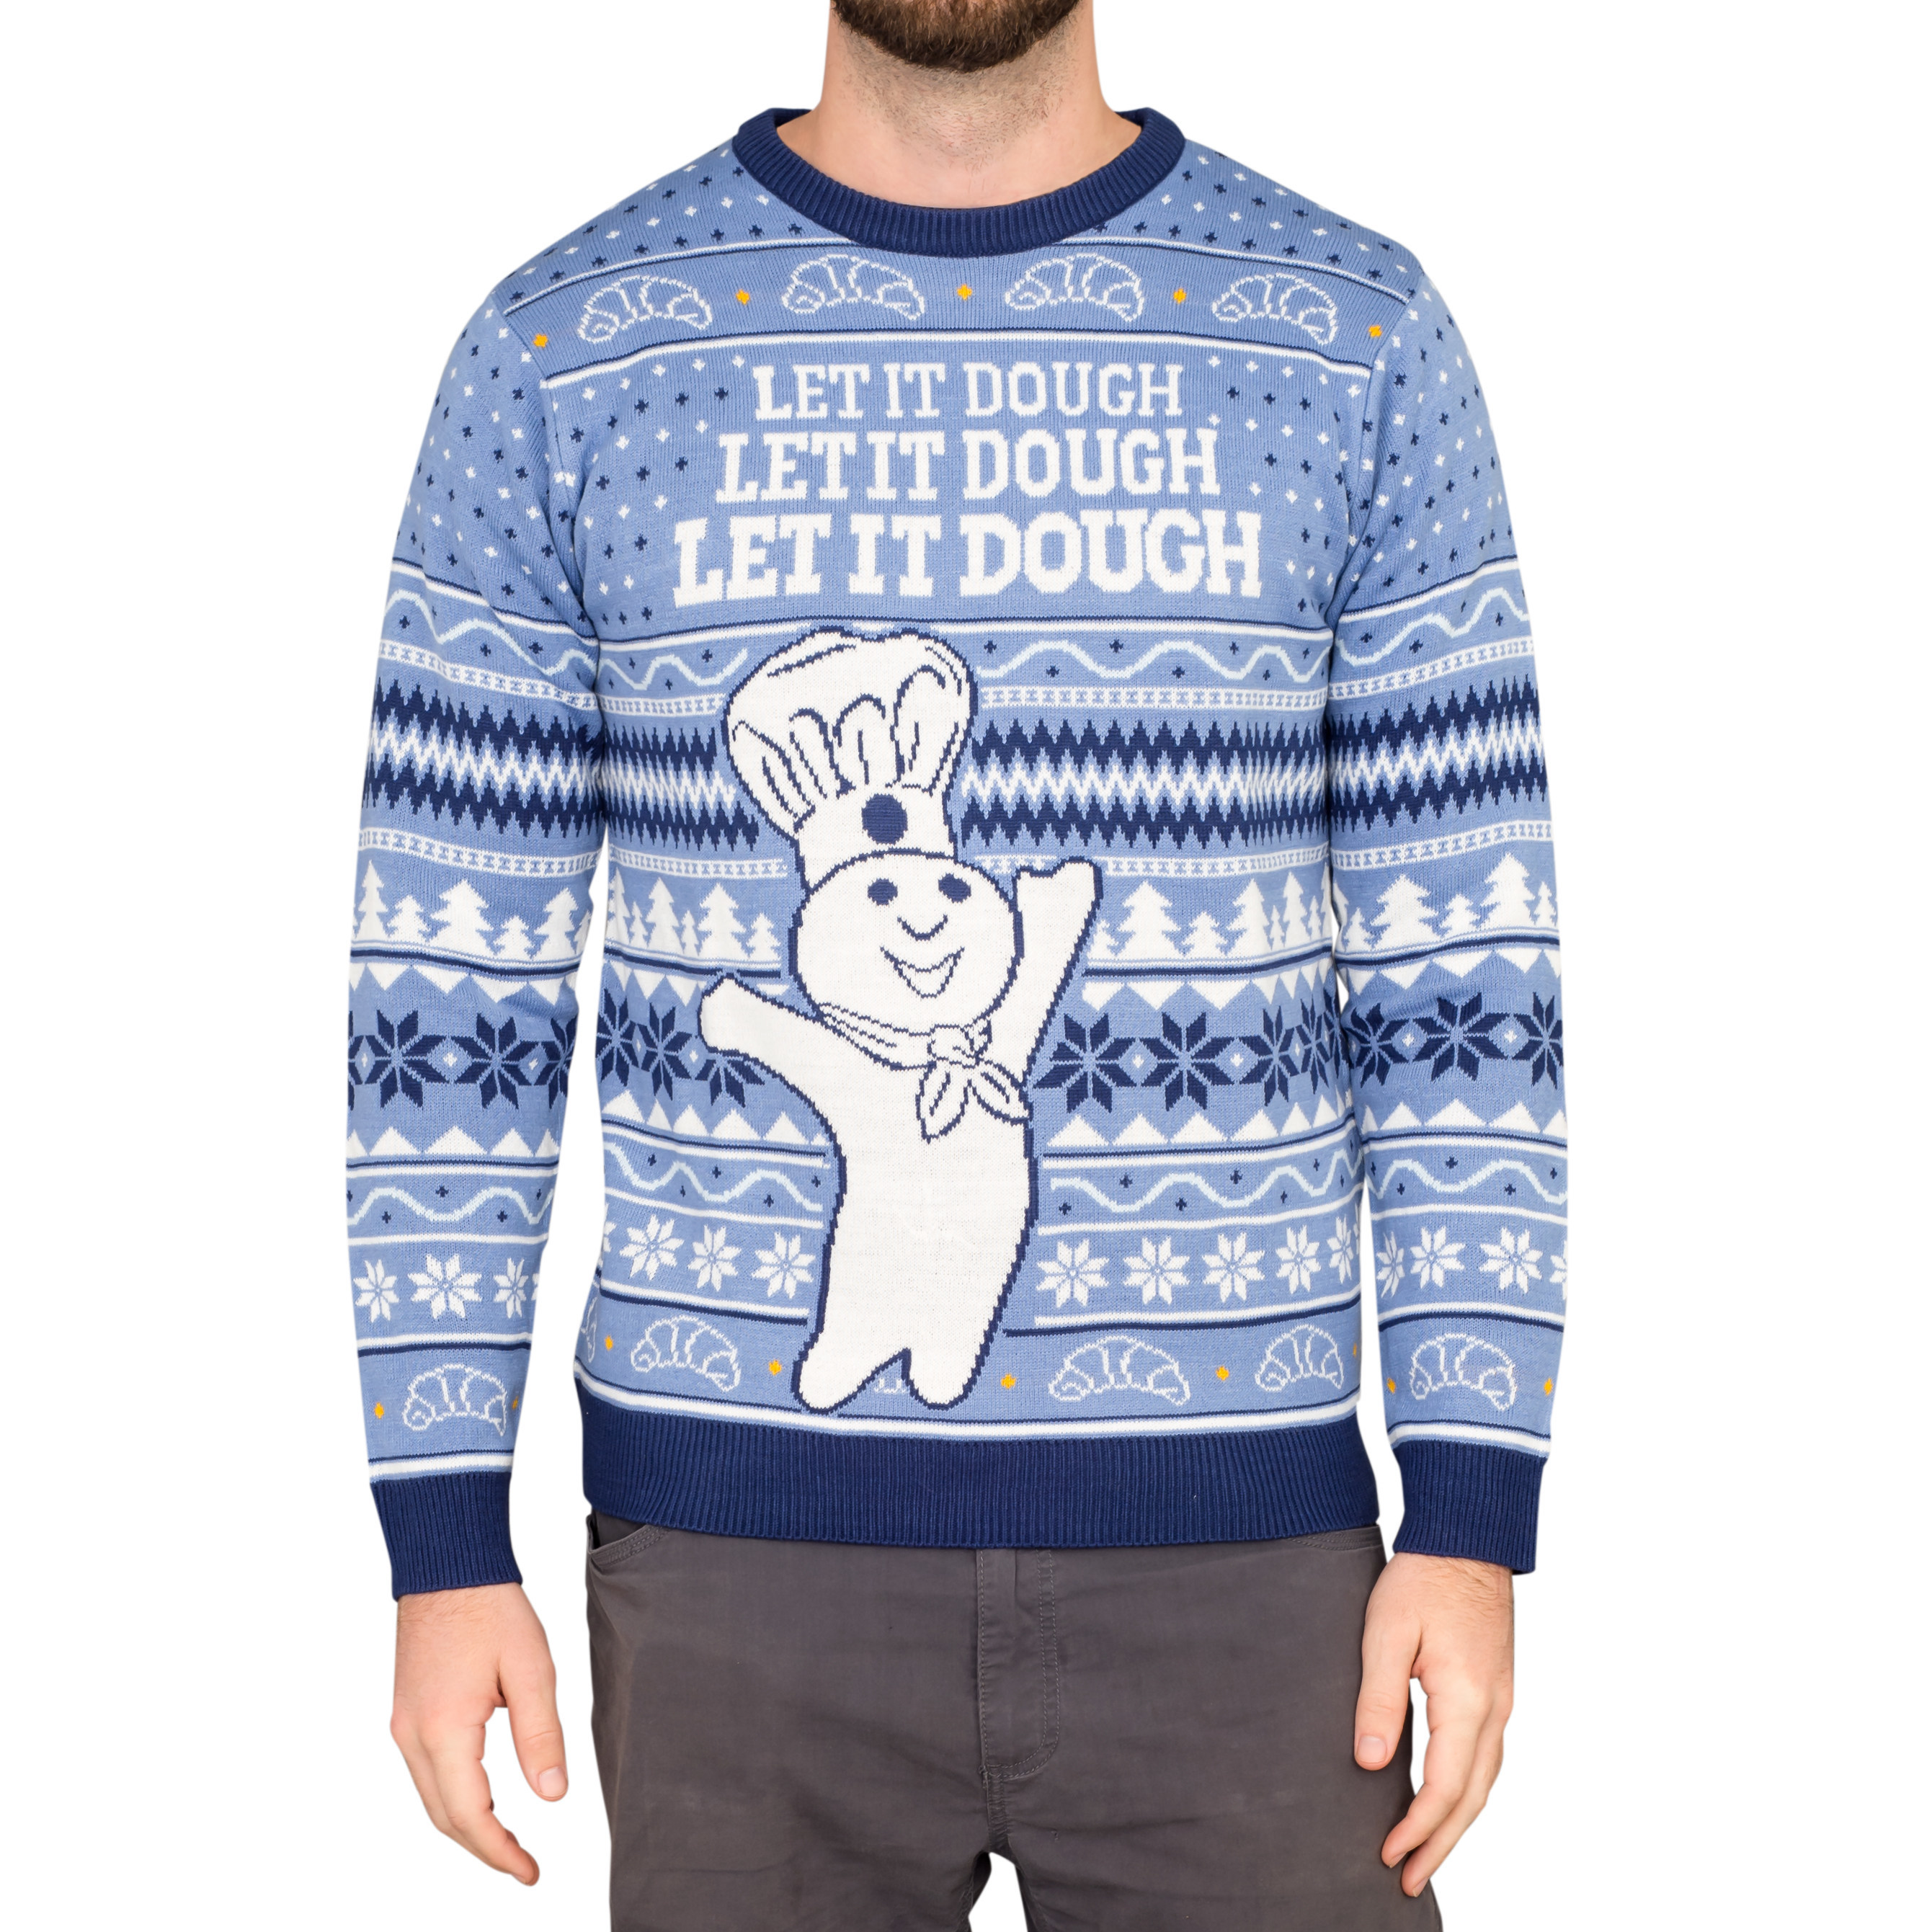 Pillsbury Debuts First Ever Line Of Doughboy Ugly Christmas Sweaters